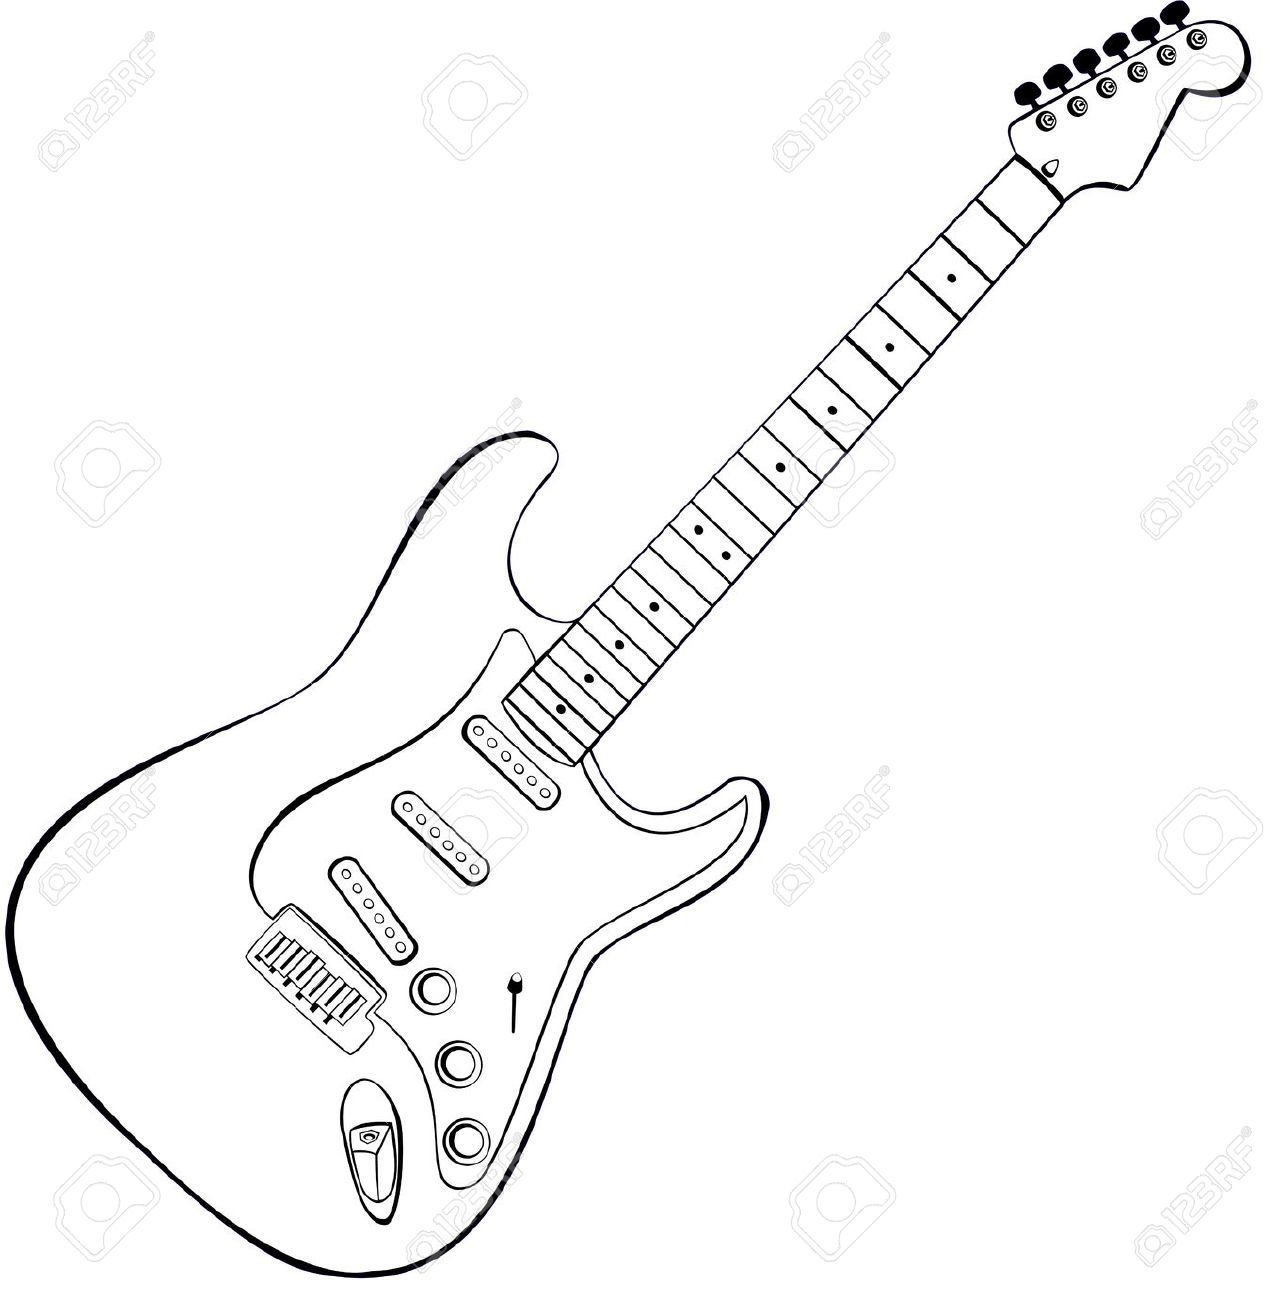 Guitar outline clipart picture black and white stock Electric guitar clipart outline 3 » Clipart Portal picture black and white stock